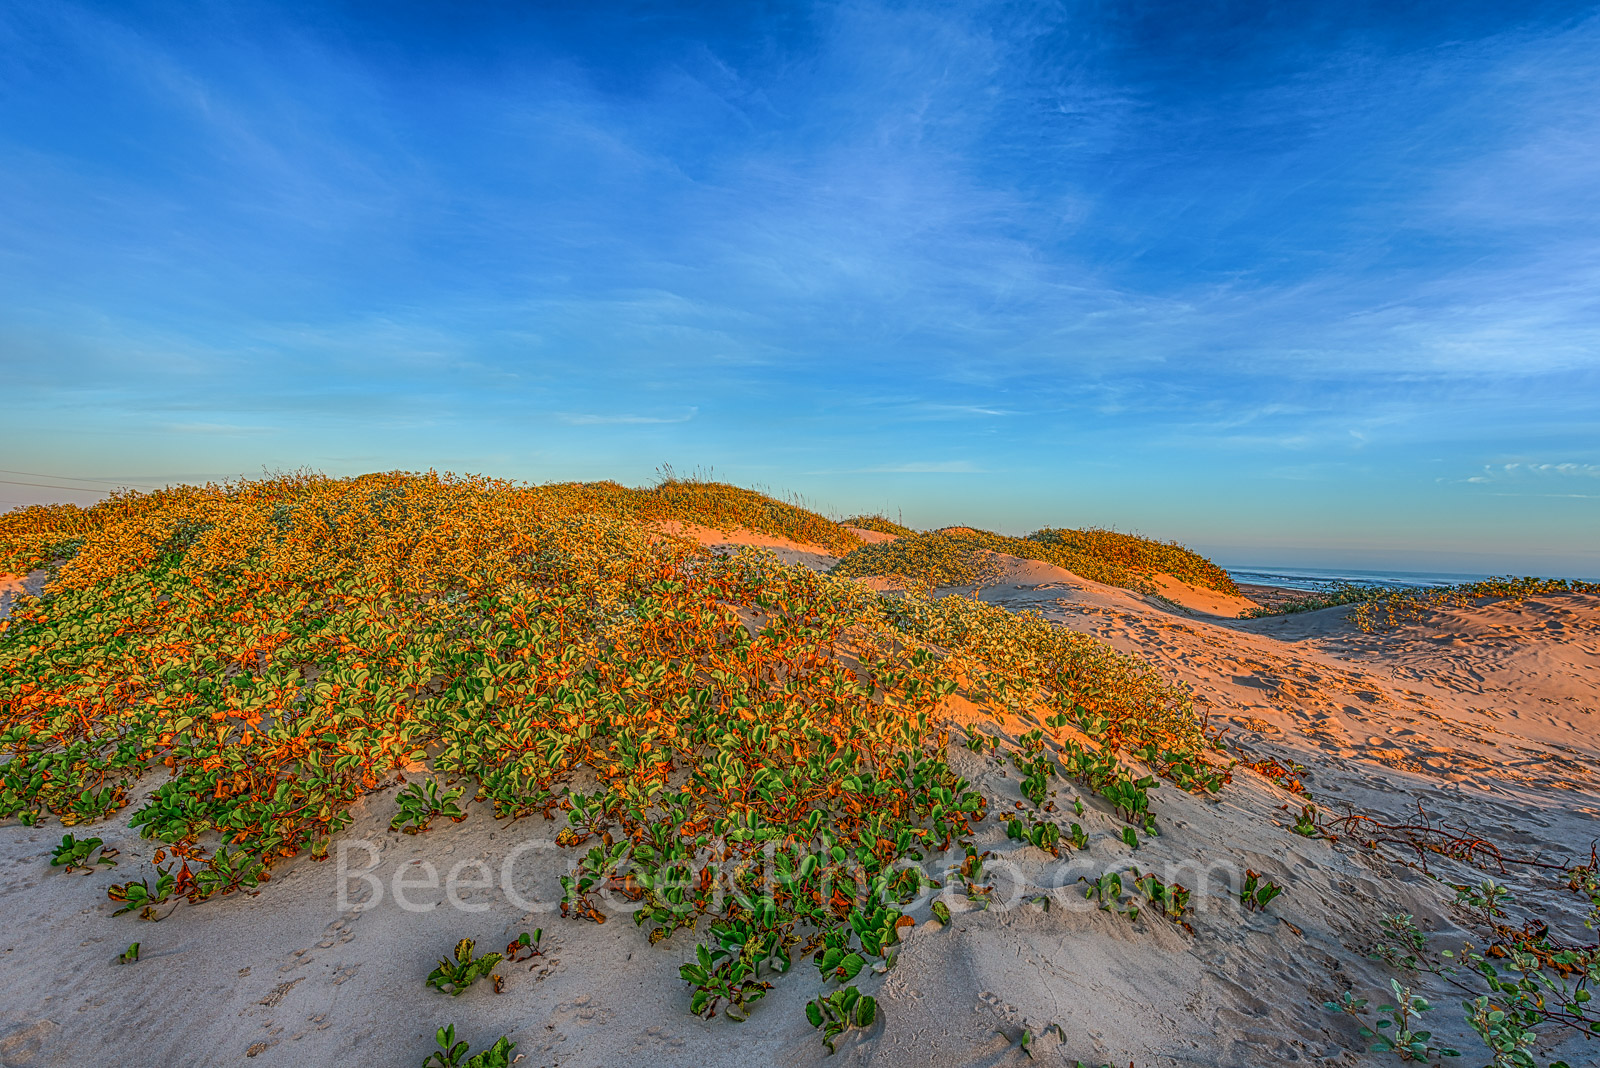 Golden Glow Over Dunes - Texas Coast Landscape - Early morning light over the beach dunes right at sunrise at Padre Island...